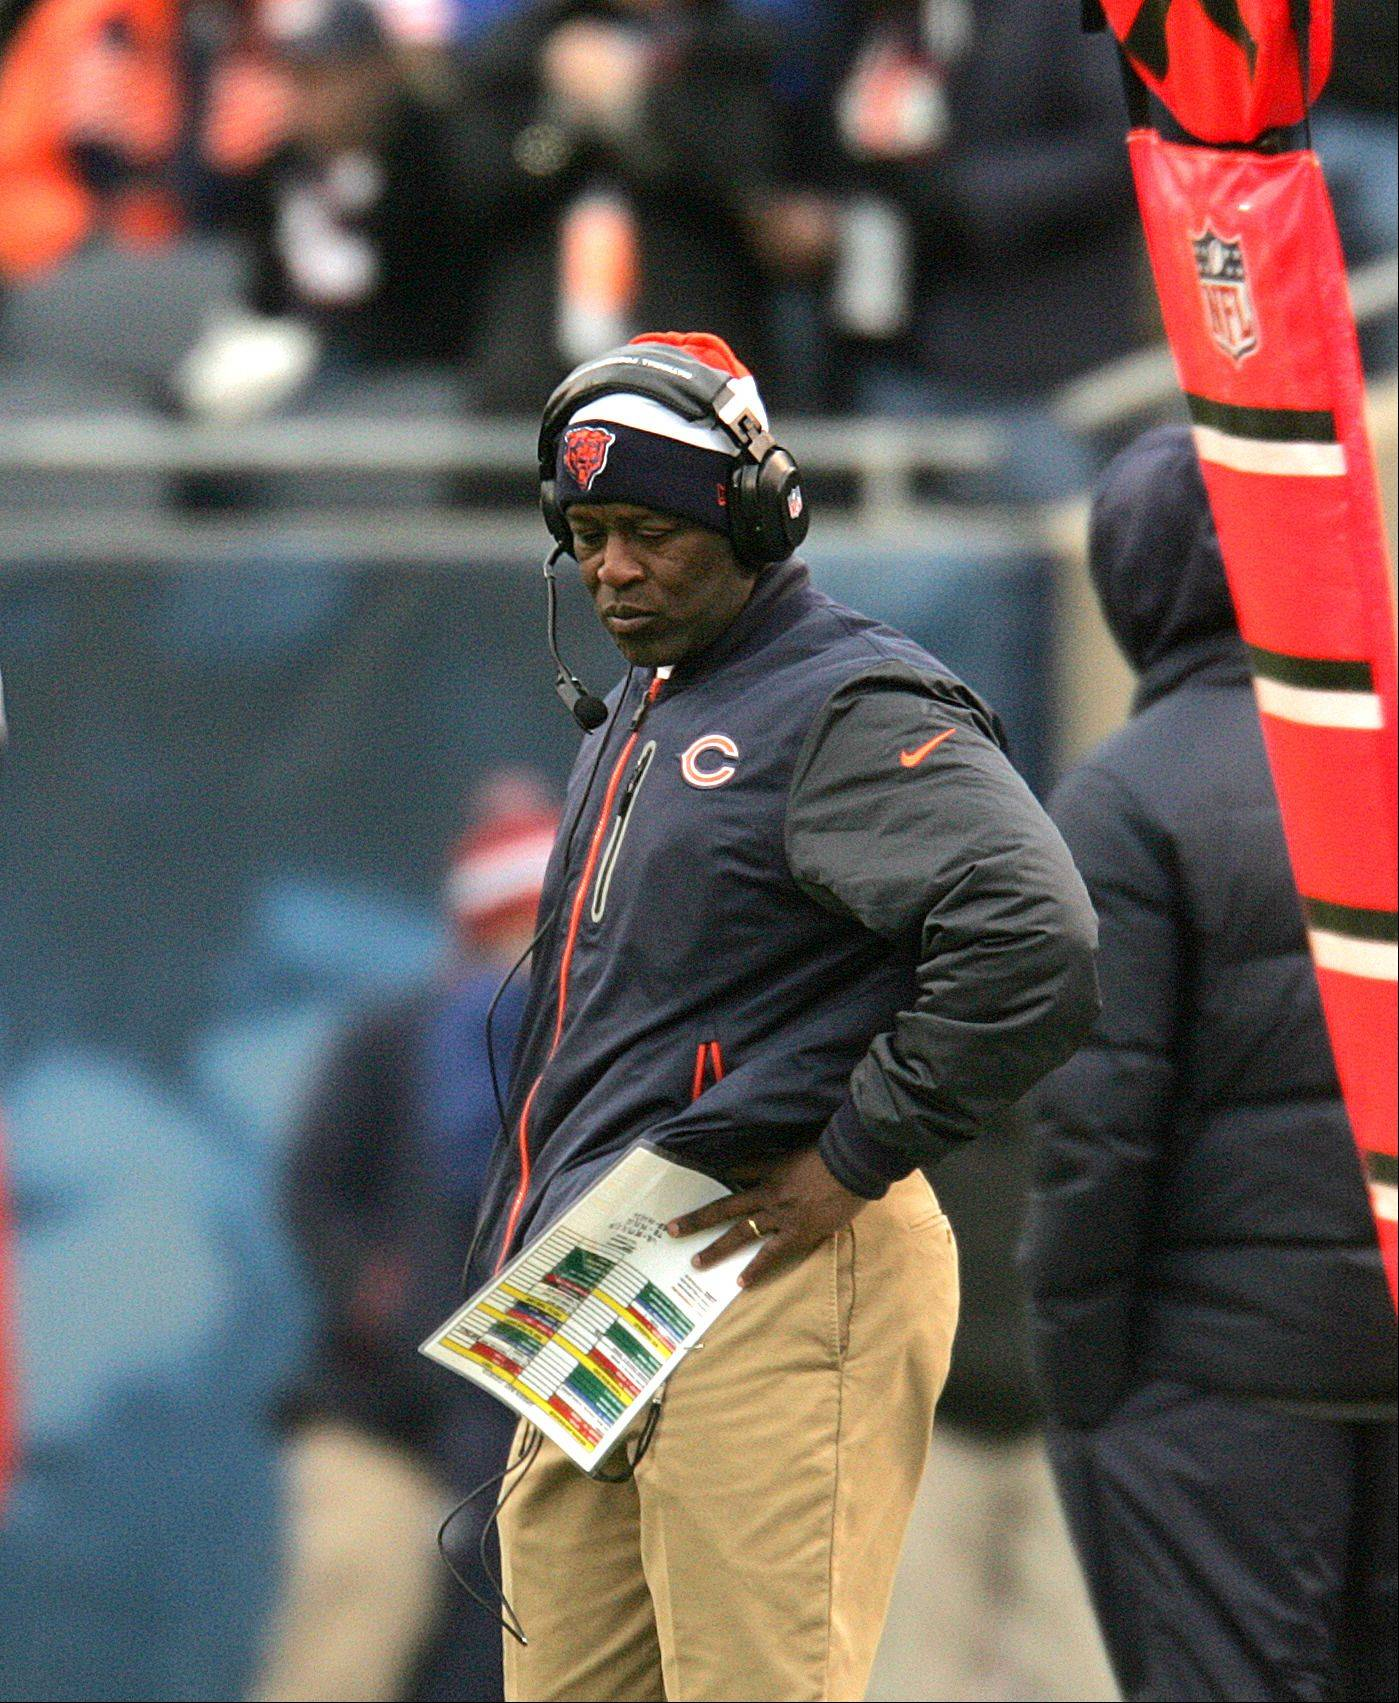 Bears head coach Lovie Smith reacts after a Packers touchdown in the first half of Sunday's game at Soldier Field in Chicago.